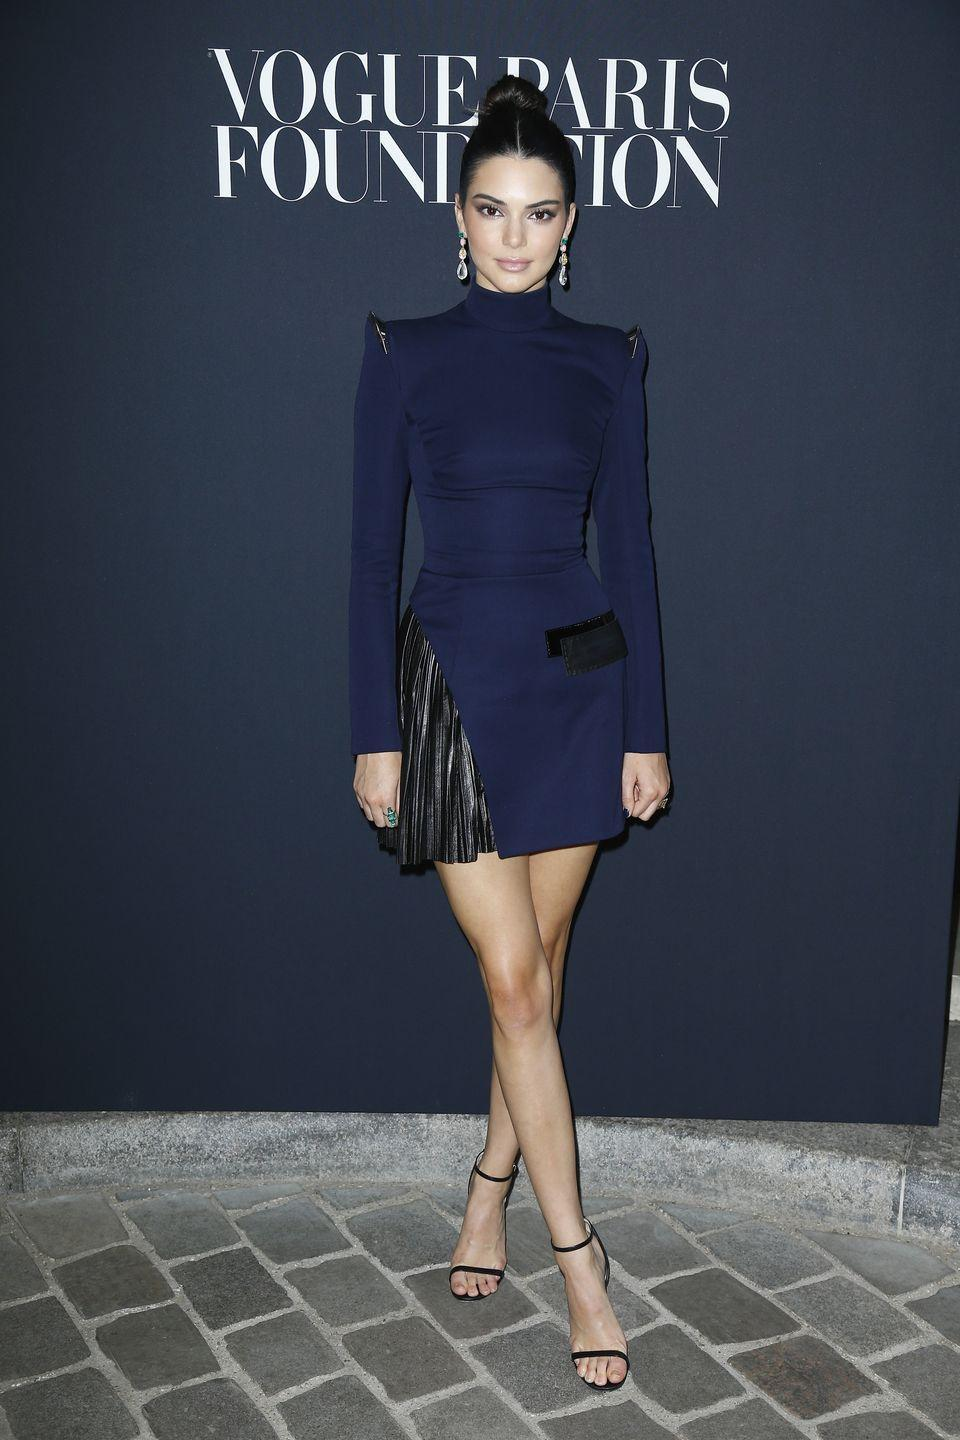 <p>The 21-year-old stunned in a black and navy, high-collared number at the Vogue Foundation Dinner in Paris</p>